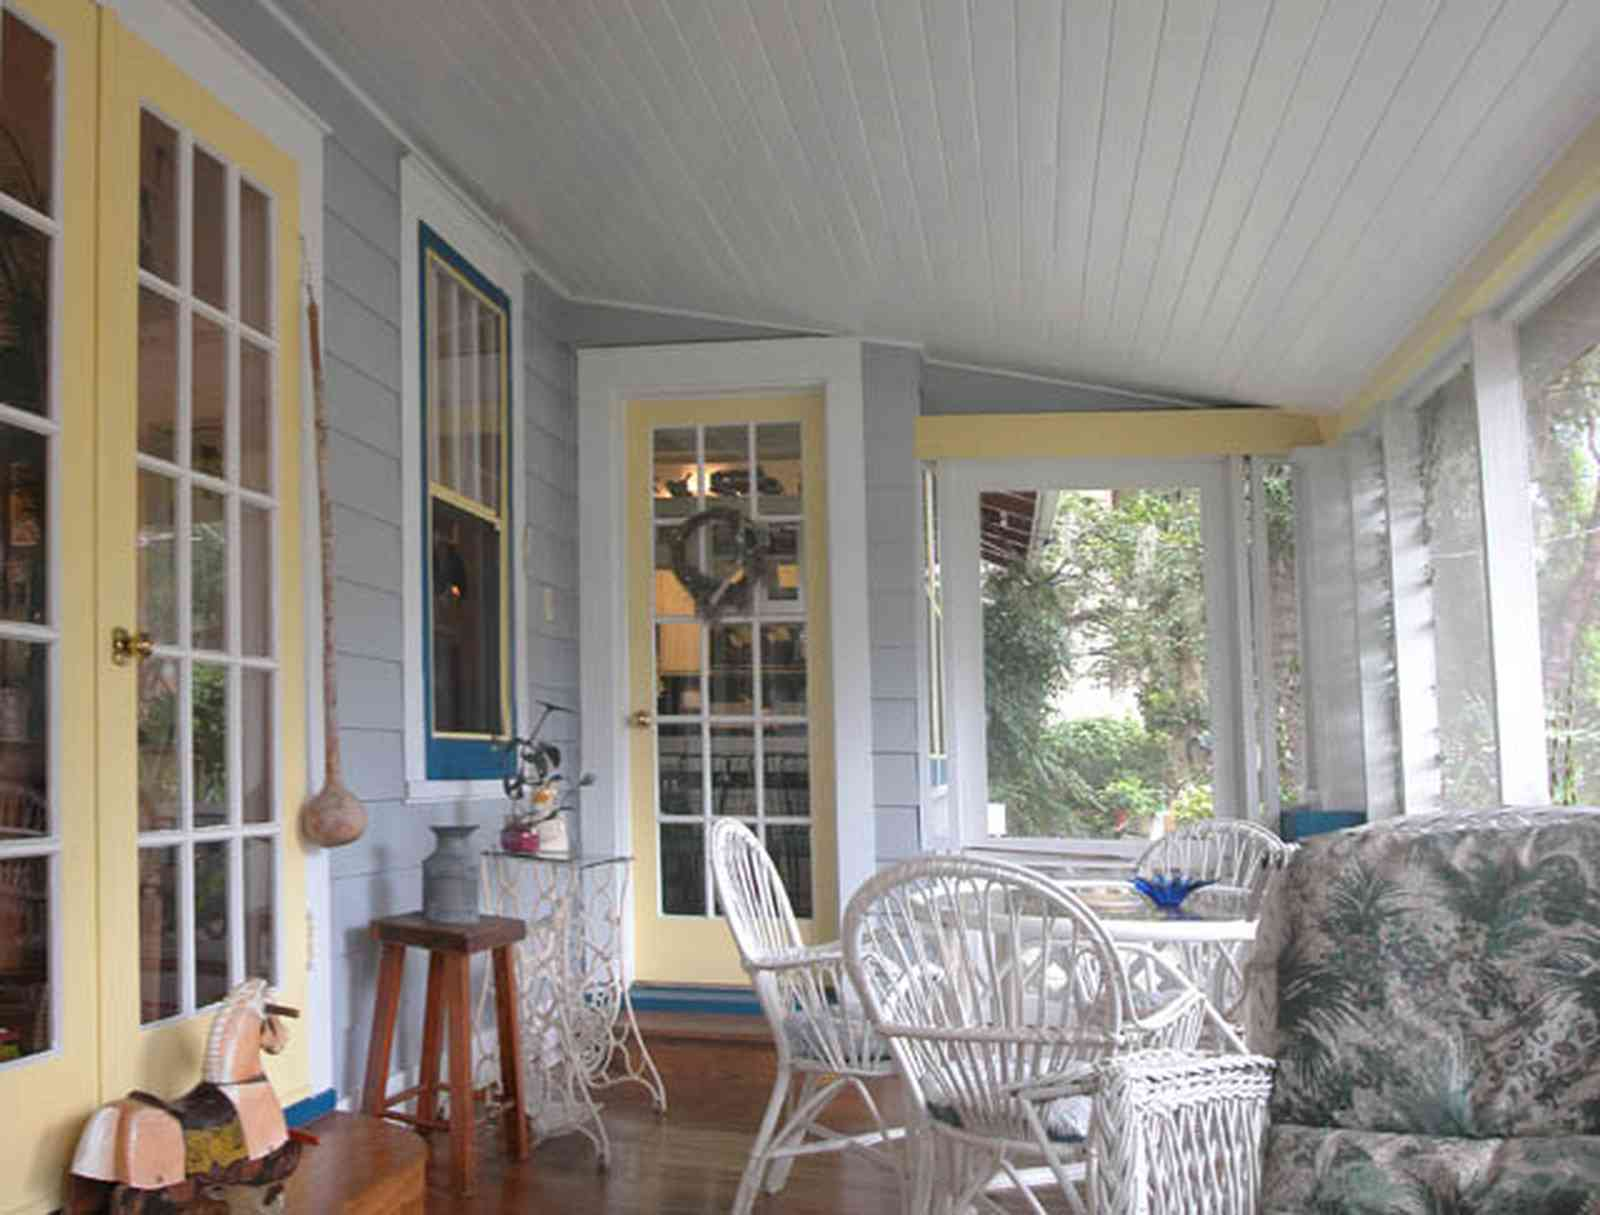 East-Pensacola-Heights:-600-Bayou-Blvd_24.jpg:  screened porch, wicker furniture, wooden floors, french doors